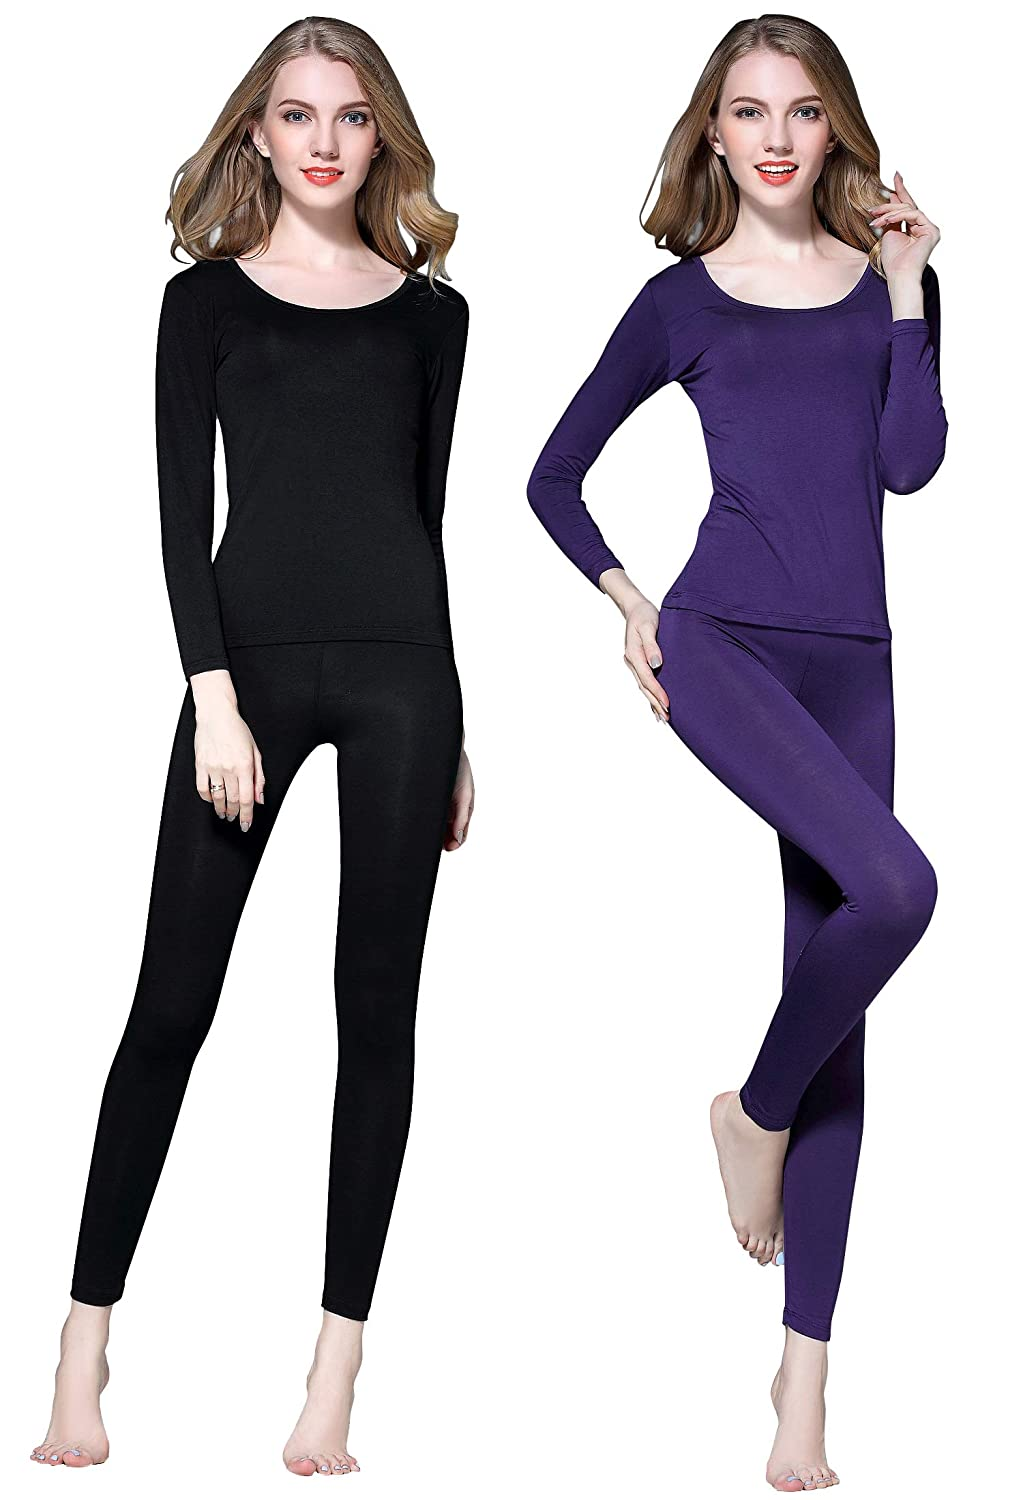 Vinconie Womens Thermal Underwear Set Scoop Neck Top & Leggings Long Johns 9960